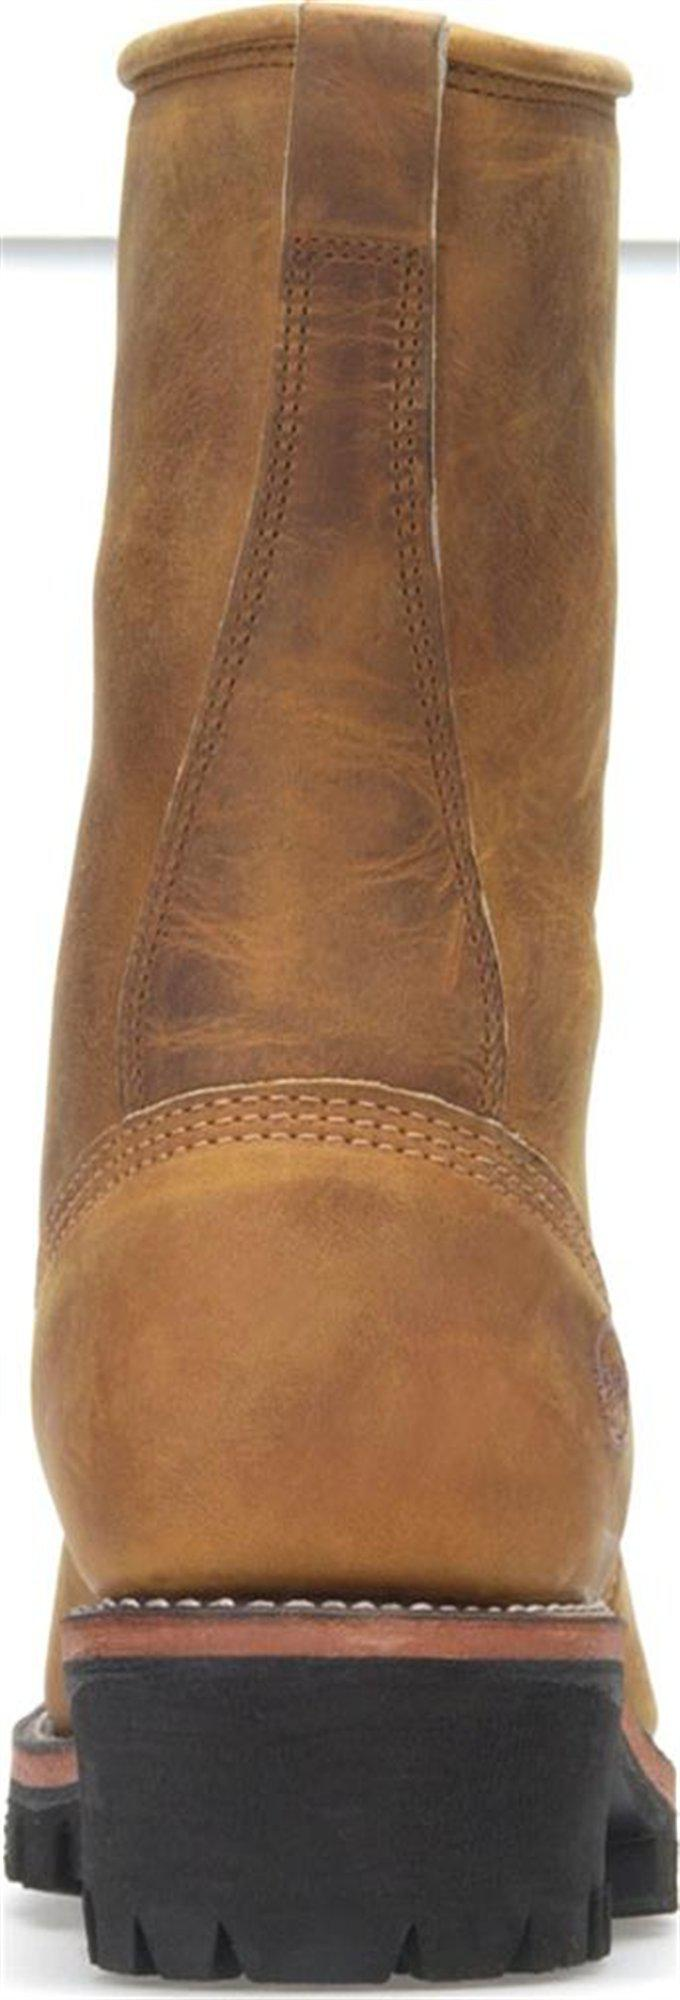 a271e5b5f86 Double H Boot Brown 10 Inch Logger for men